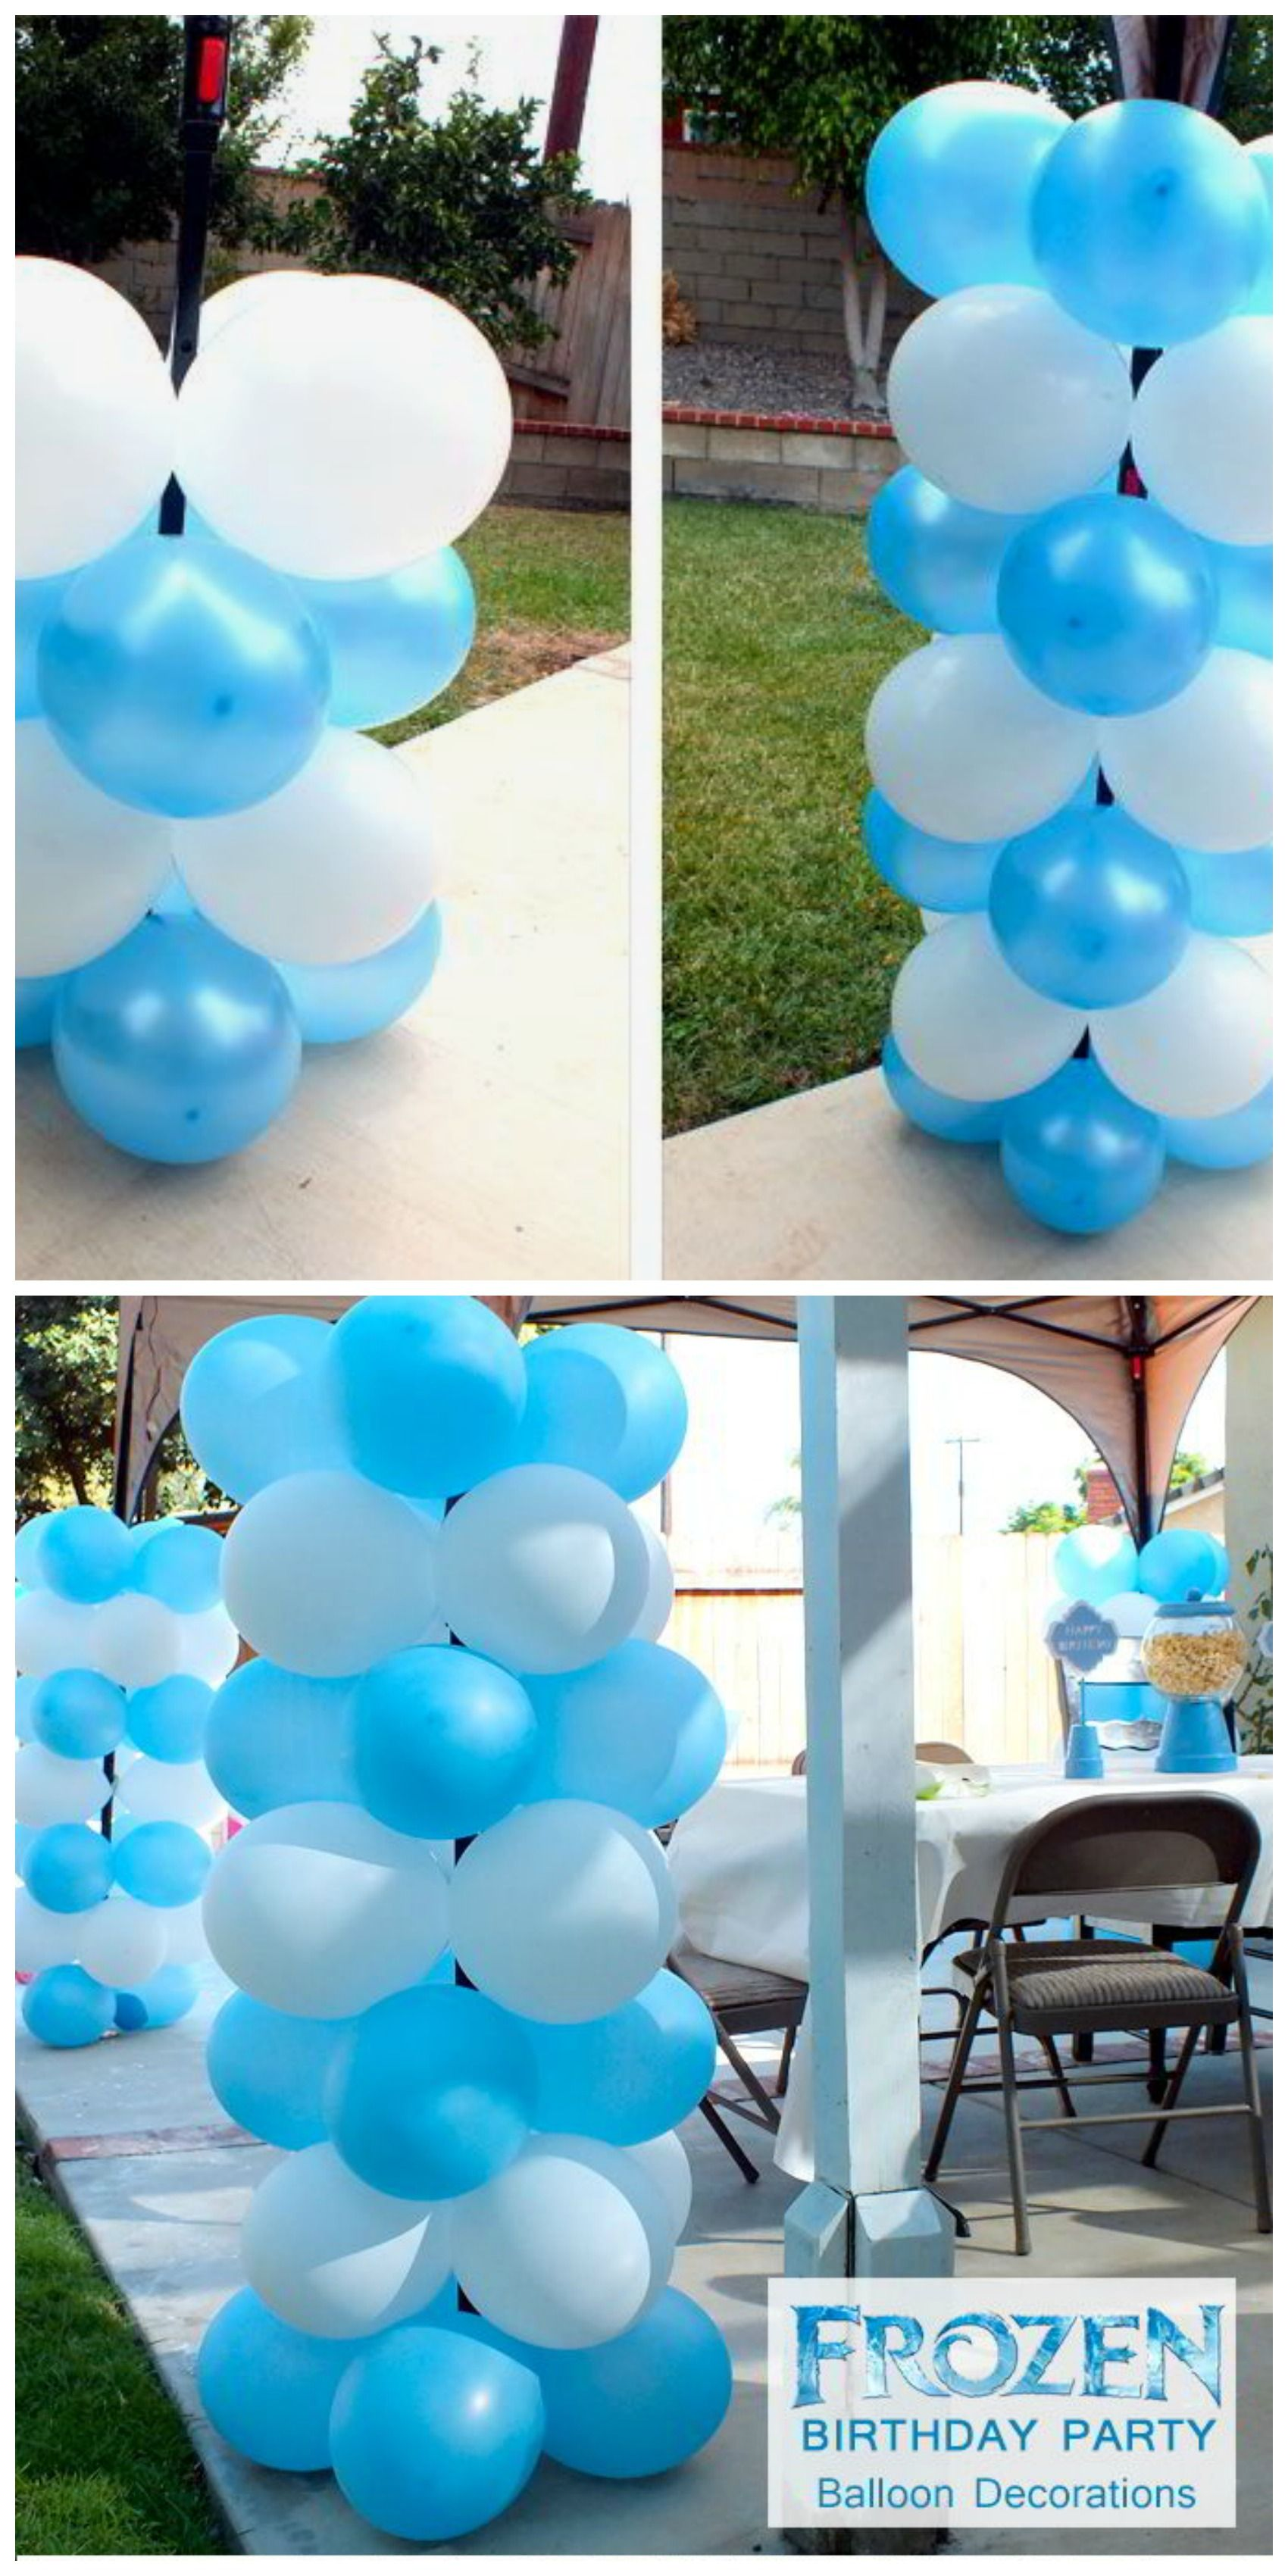 disney frozen balloon decorations best pinterest pins anything everything great on. Black Bedroom Furniture Sets. Home Design Ideas